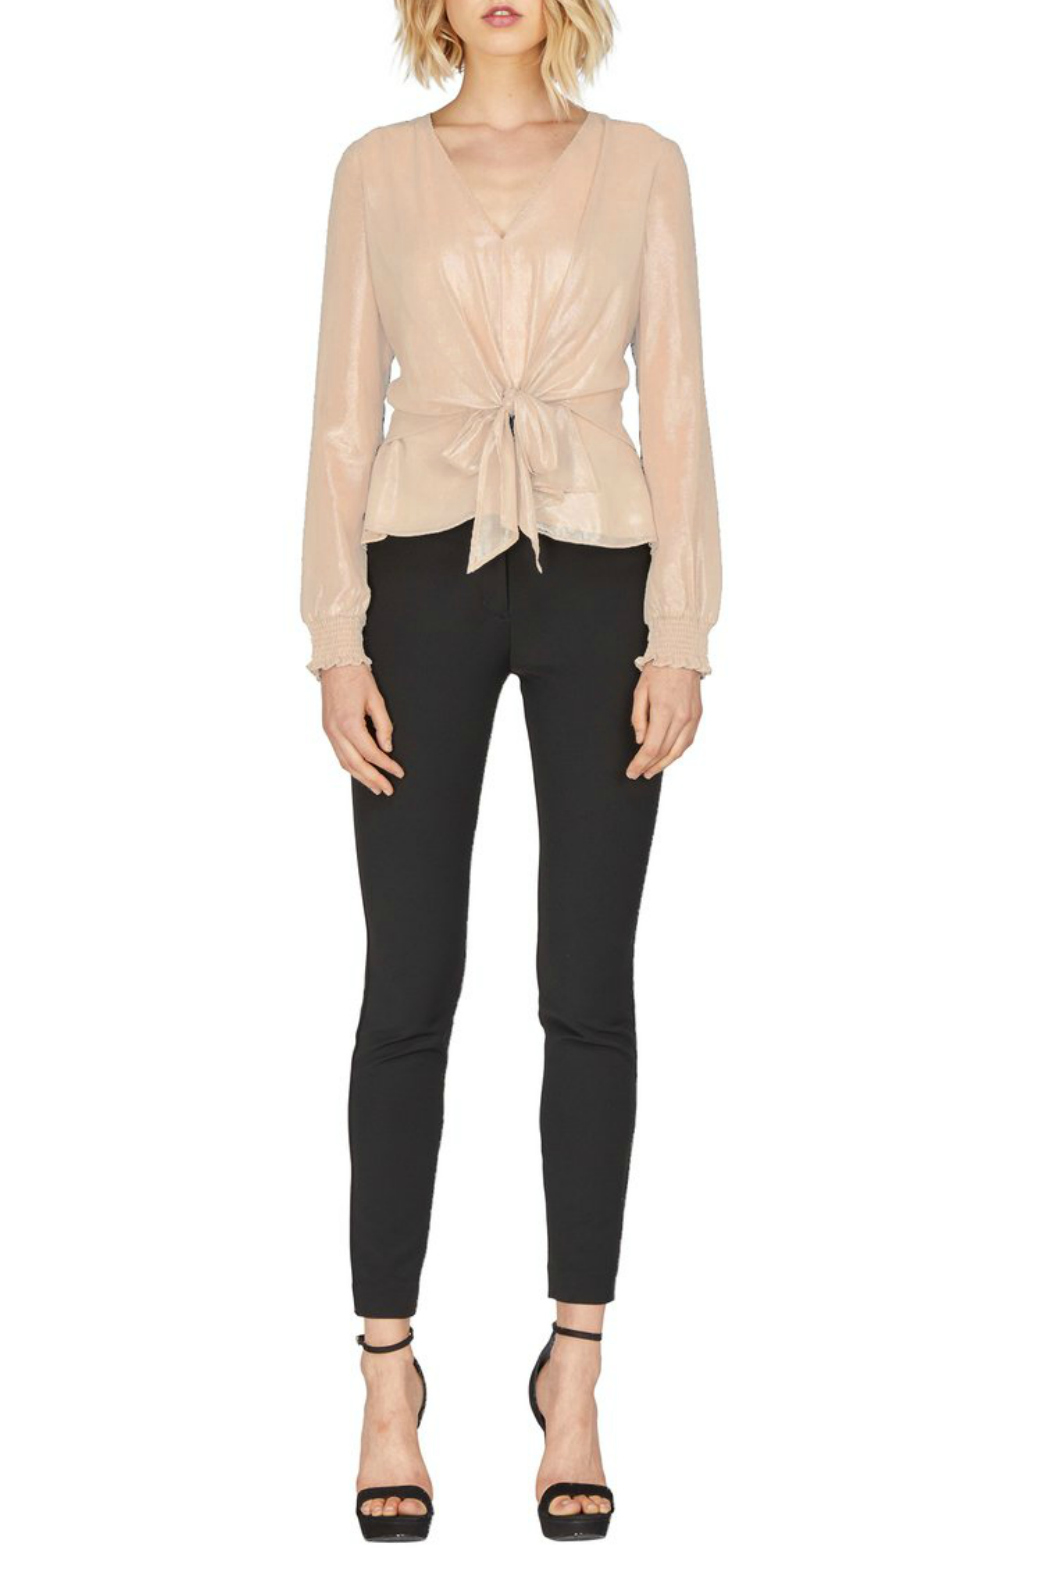 Adelyn Rae Bobbi Champagne Bow Tie Blouse - Main Image